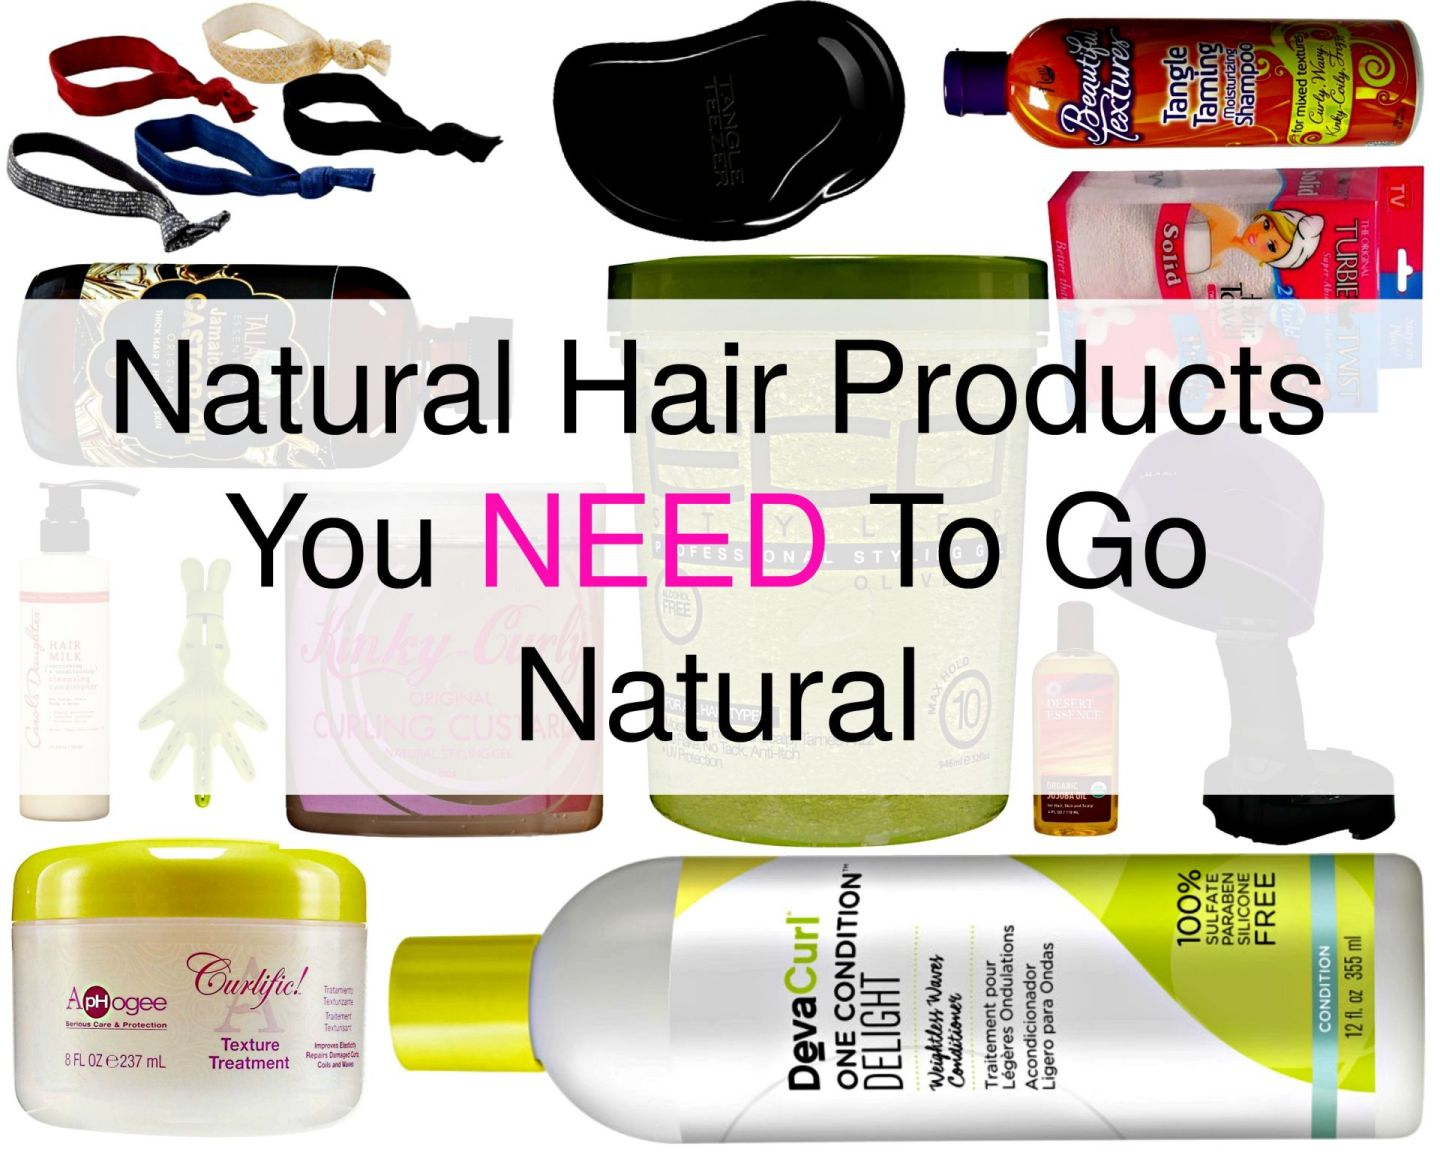 Return to natural hair successfully even if it's been your 2nd or your 10 time trying. Check out our top tips to get it right for the last time!